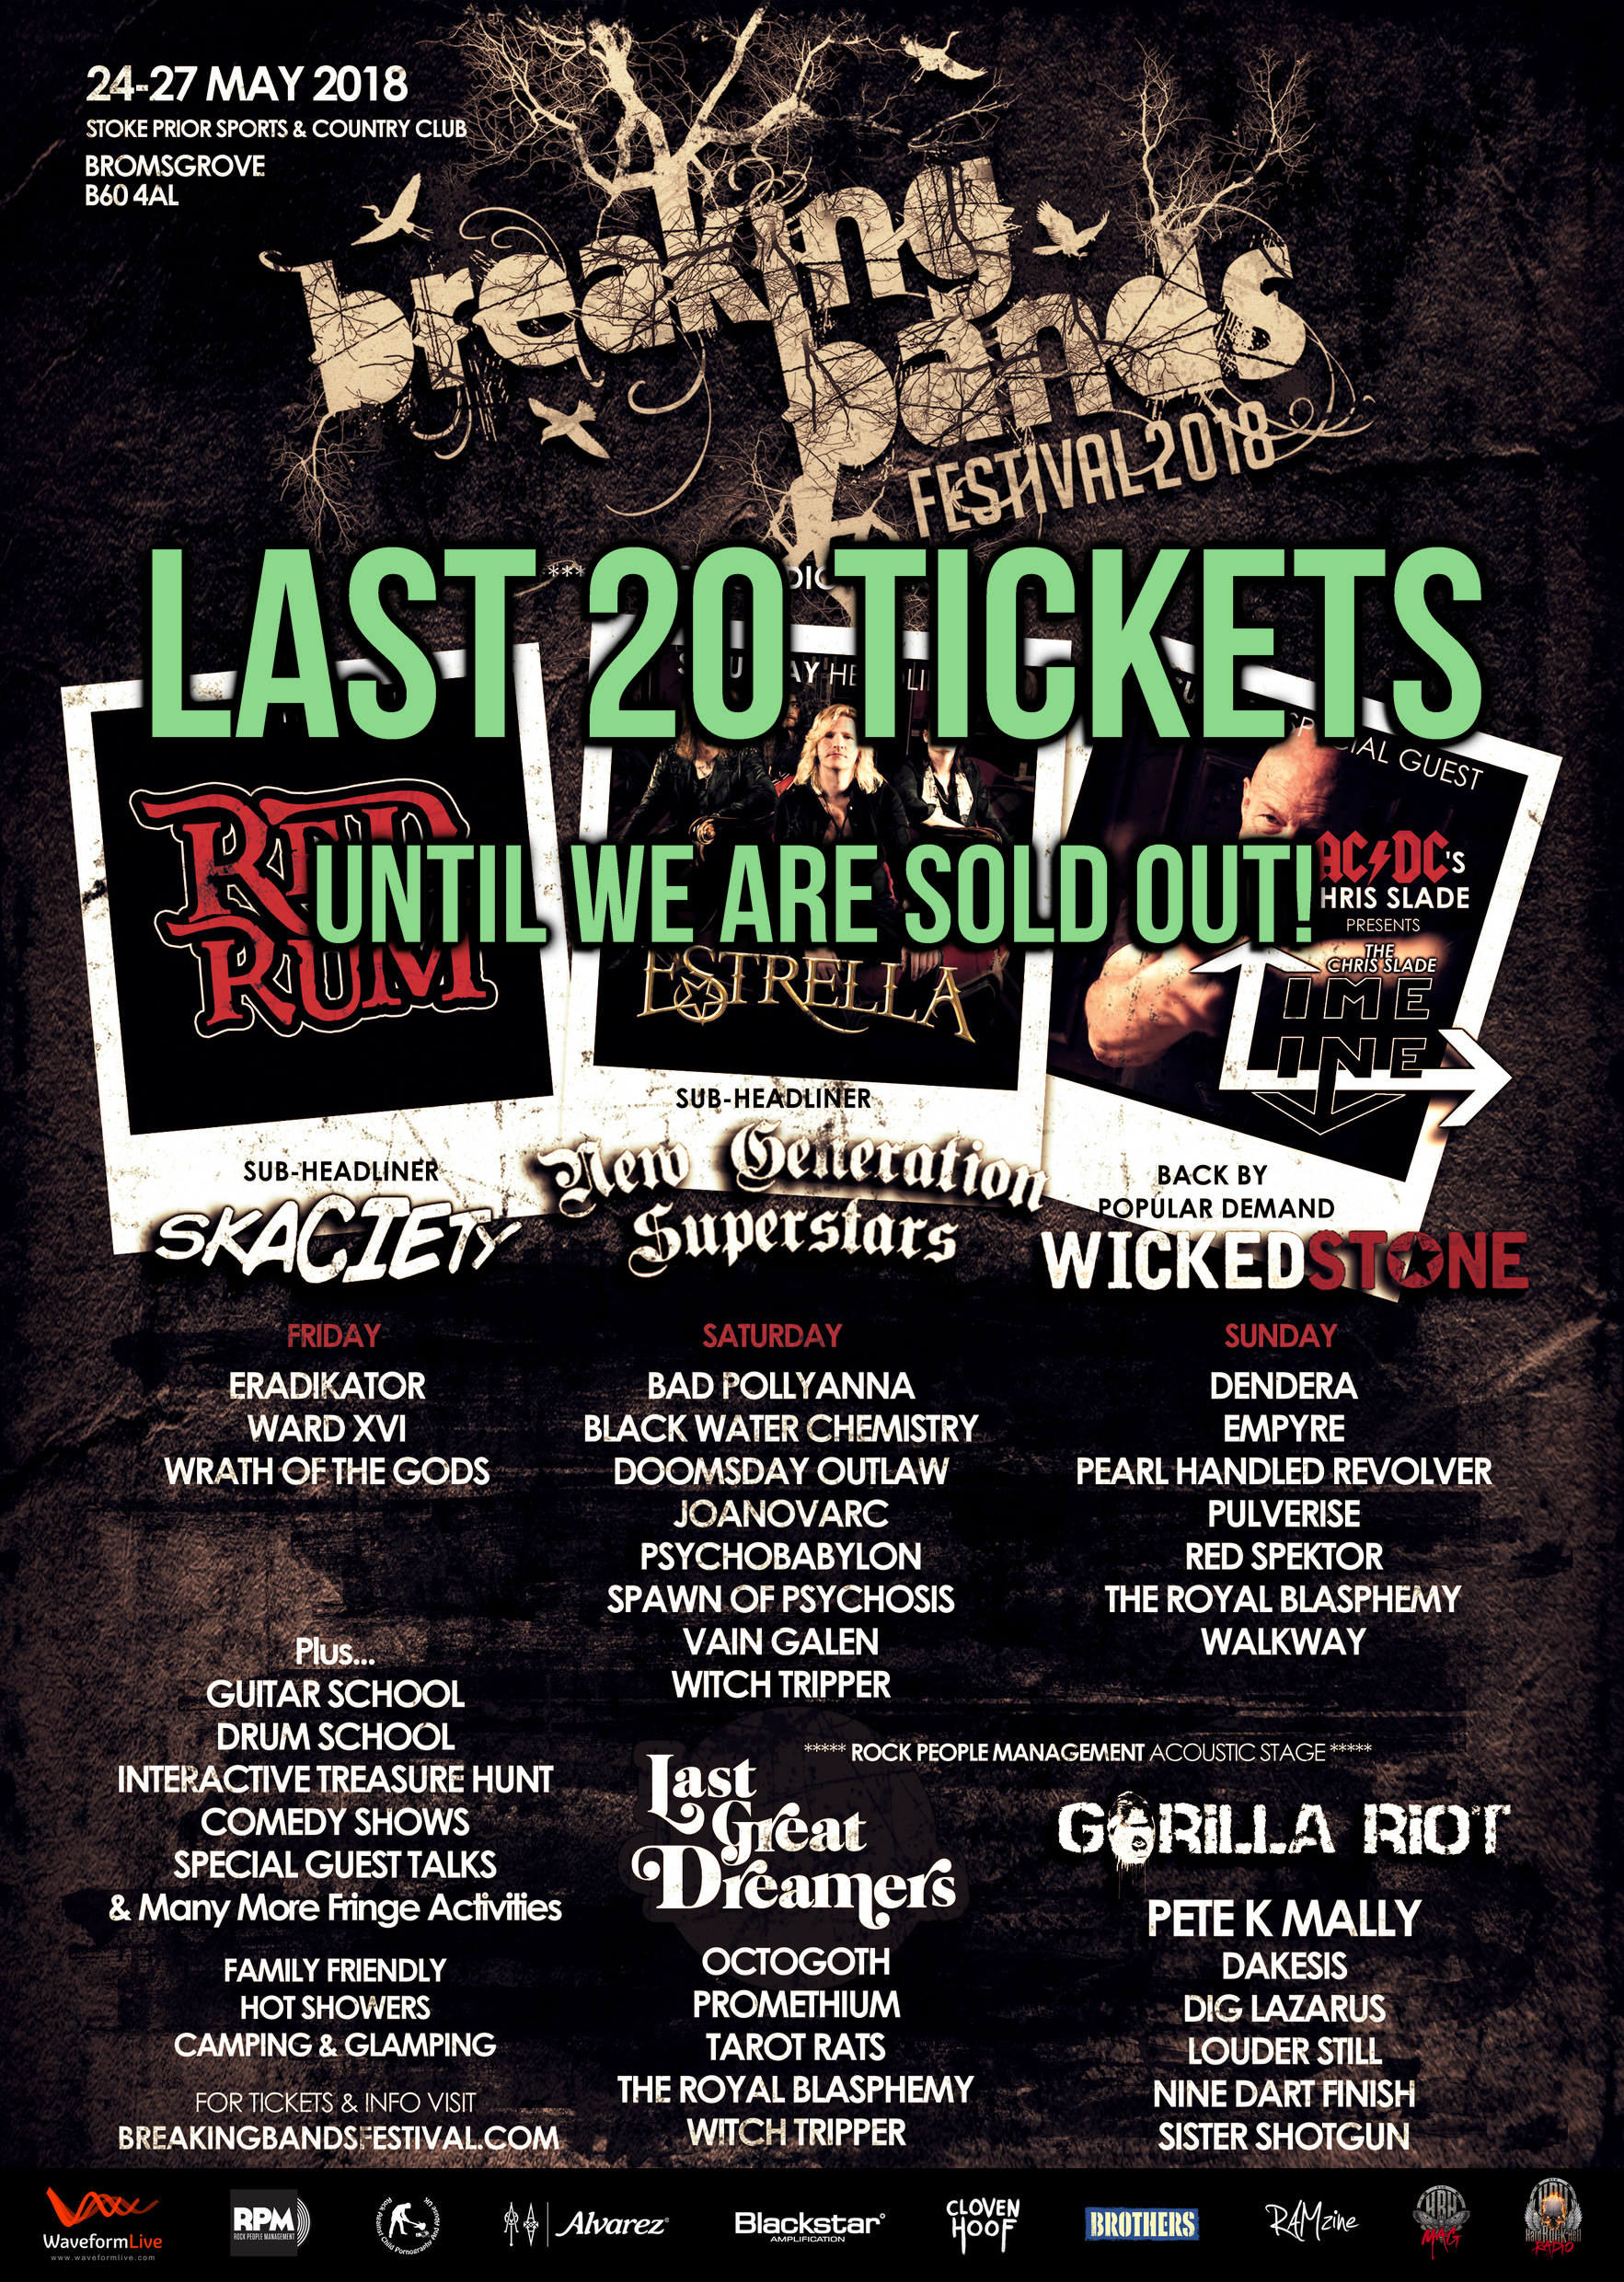 FINAL 20 TICKETS AVAILABLE FOR BREAKING BANDS FESTIVAL IV